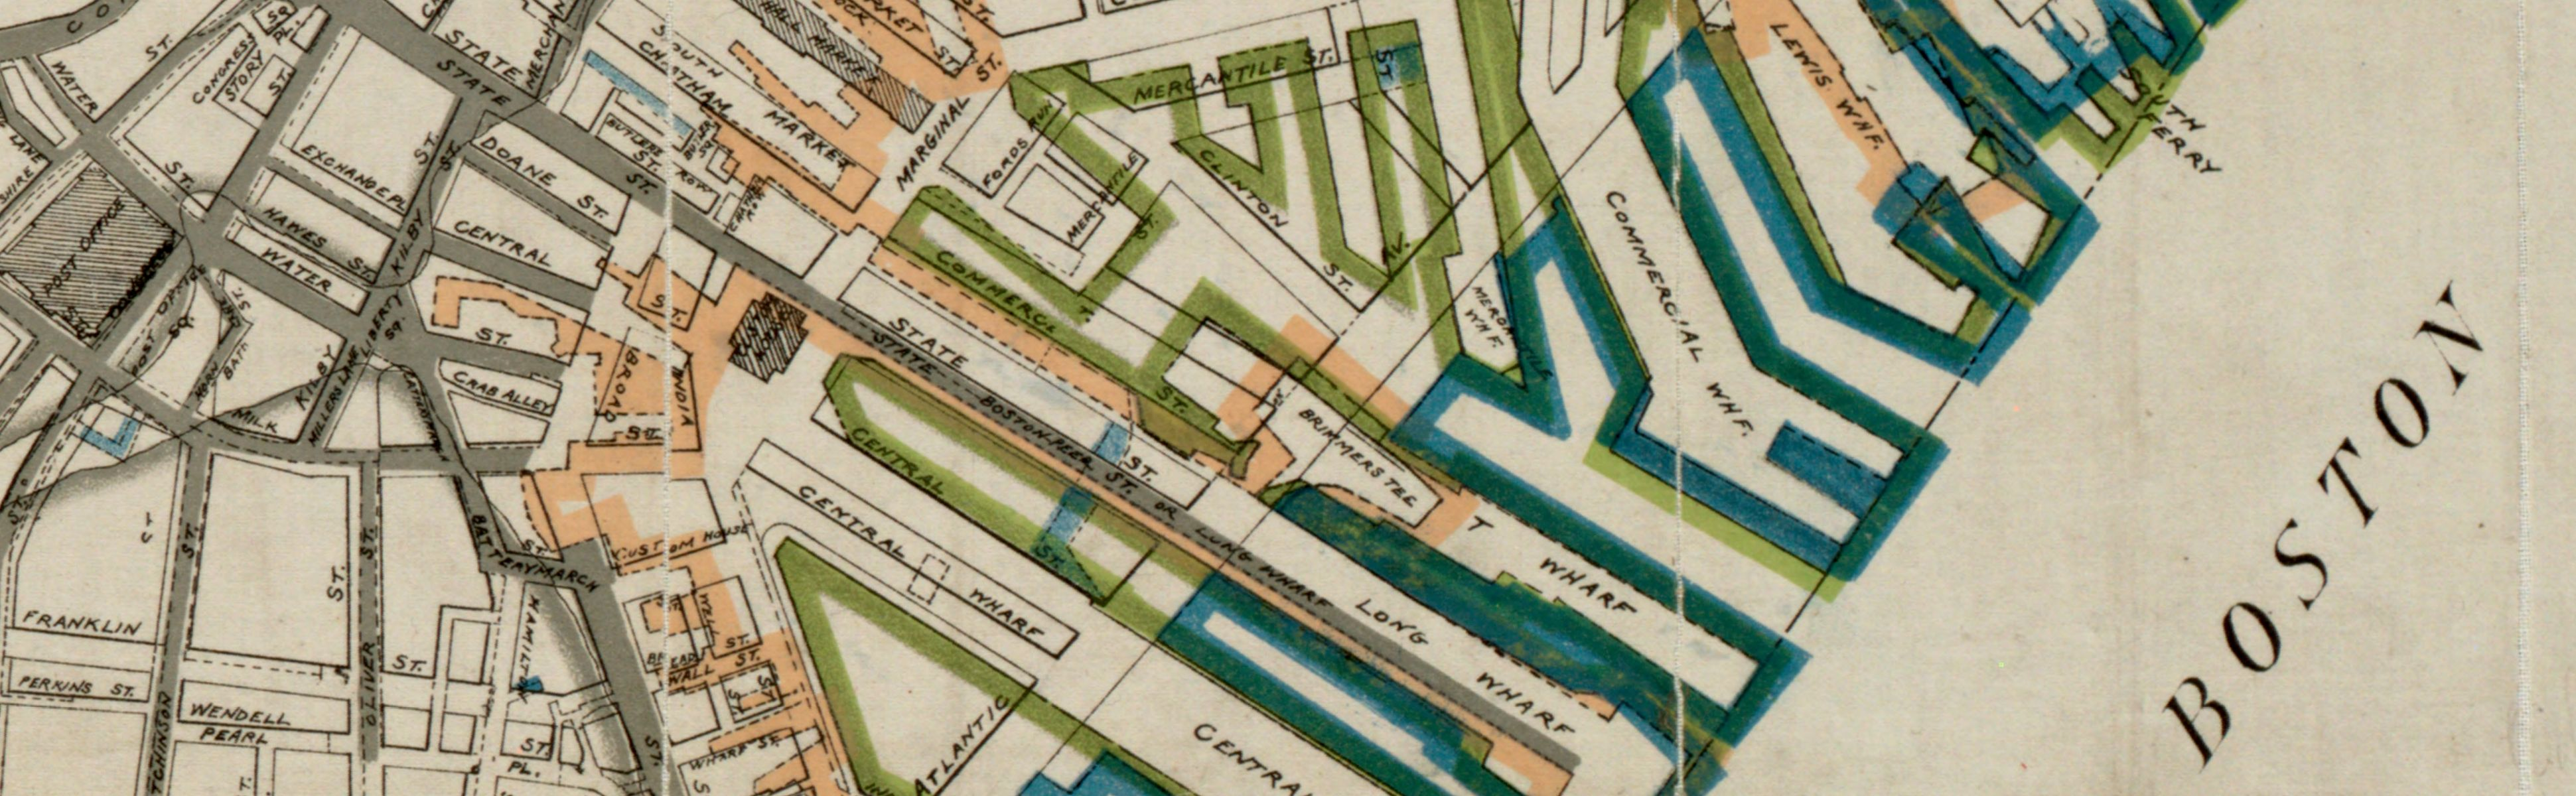 This 1895 map documents the changing shoreline of Boston using different colors